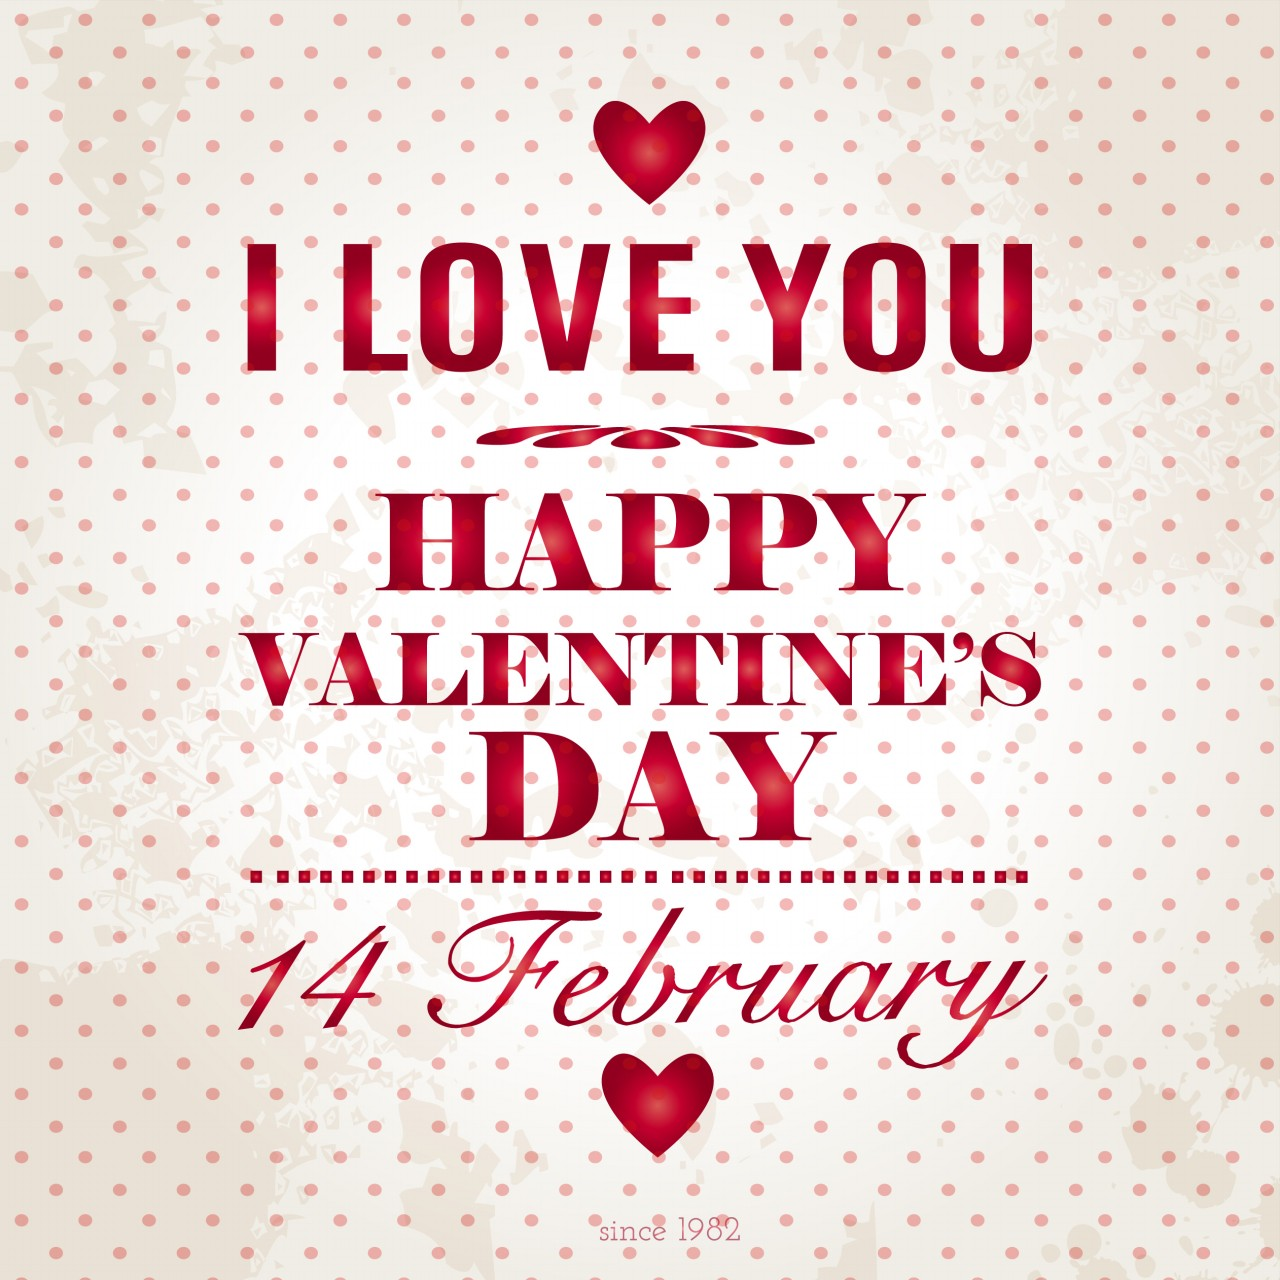 Happy Valentines Day Love Quotes 2016 Daily Roabox